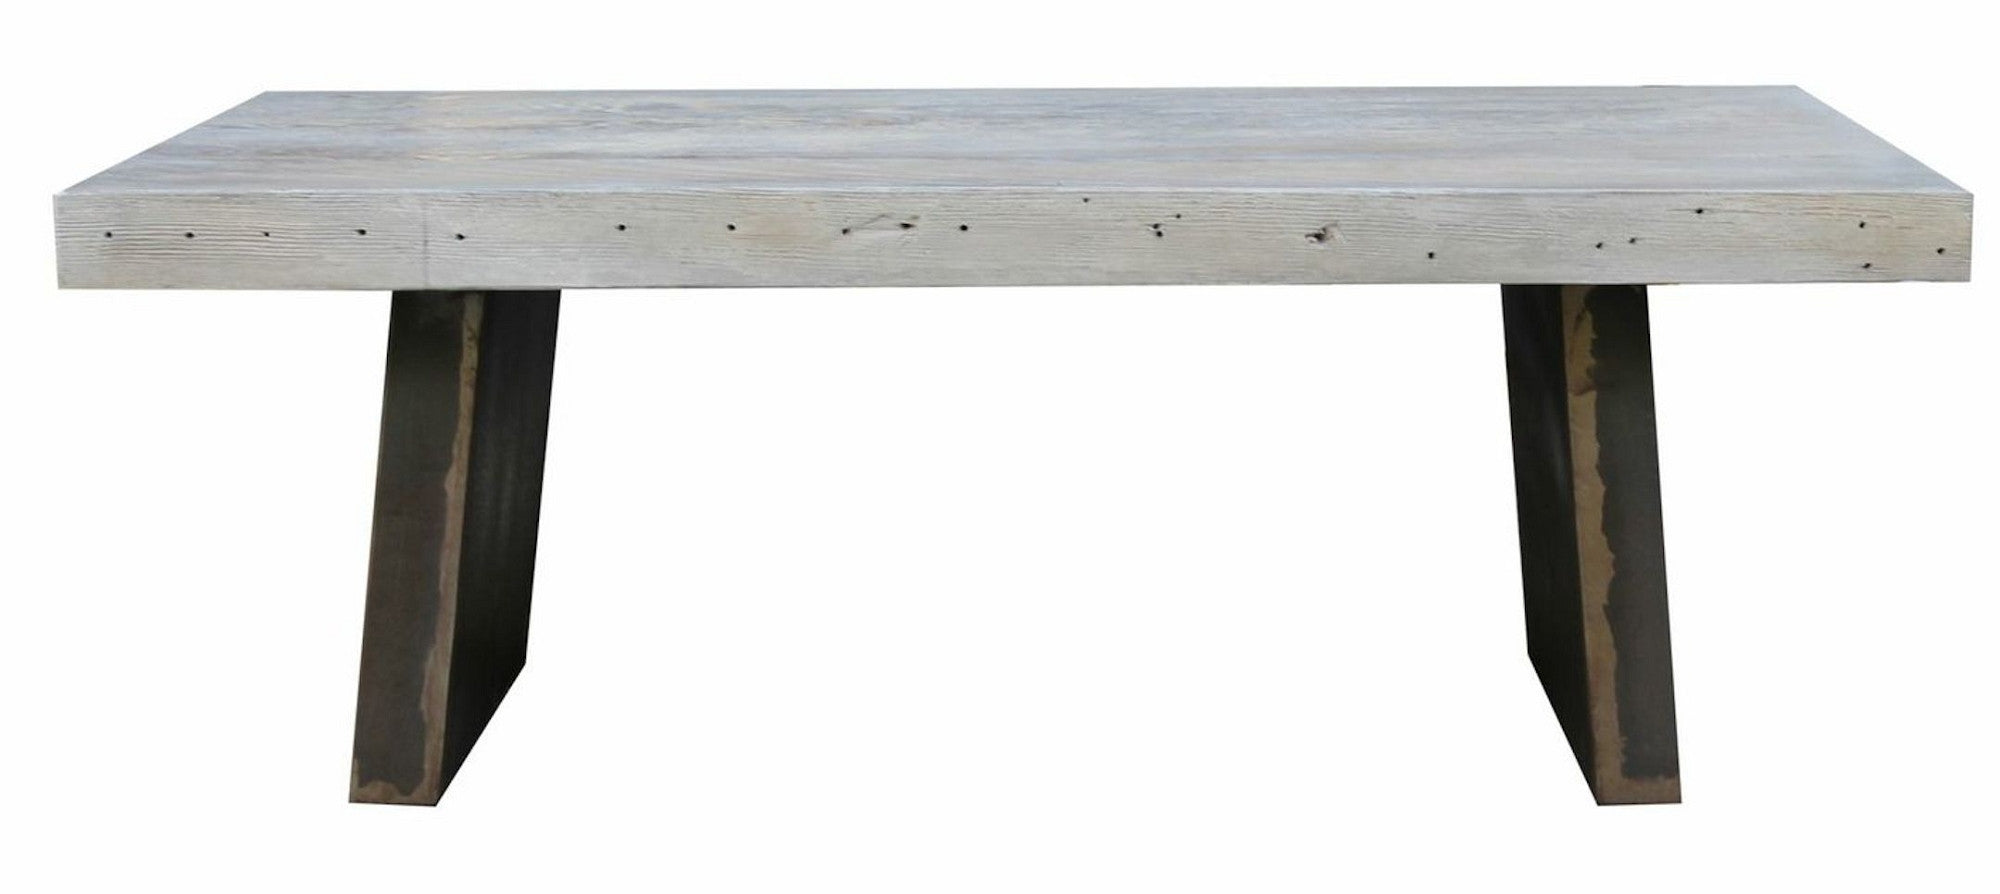 Vintage modern reclaimed wood coffee table mortise tenon vintage modern reclaimed wood coffee table geotapseo Image collections